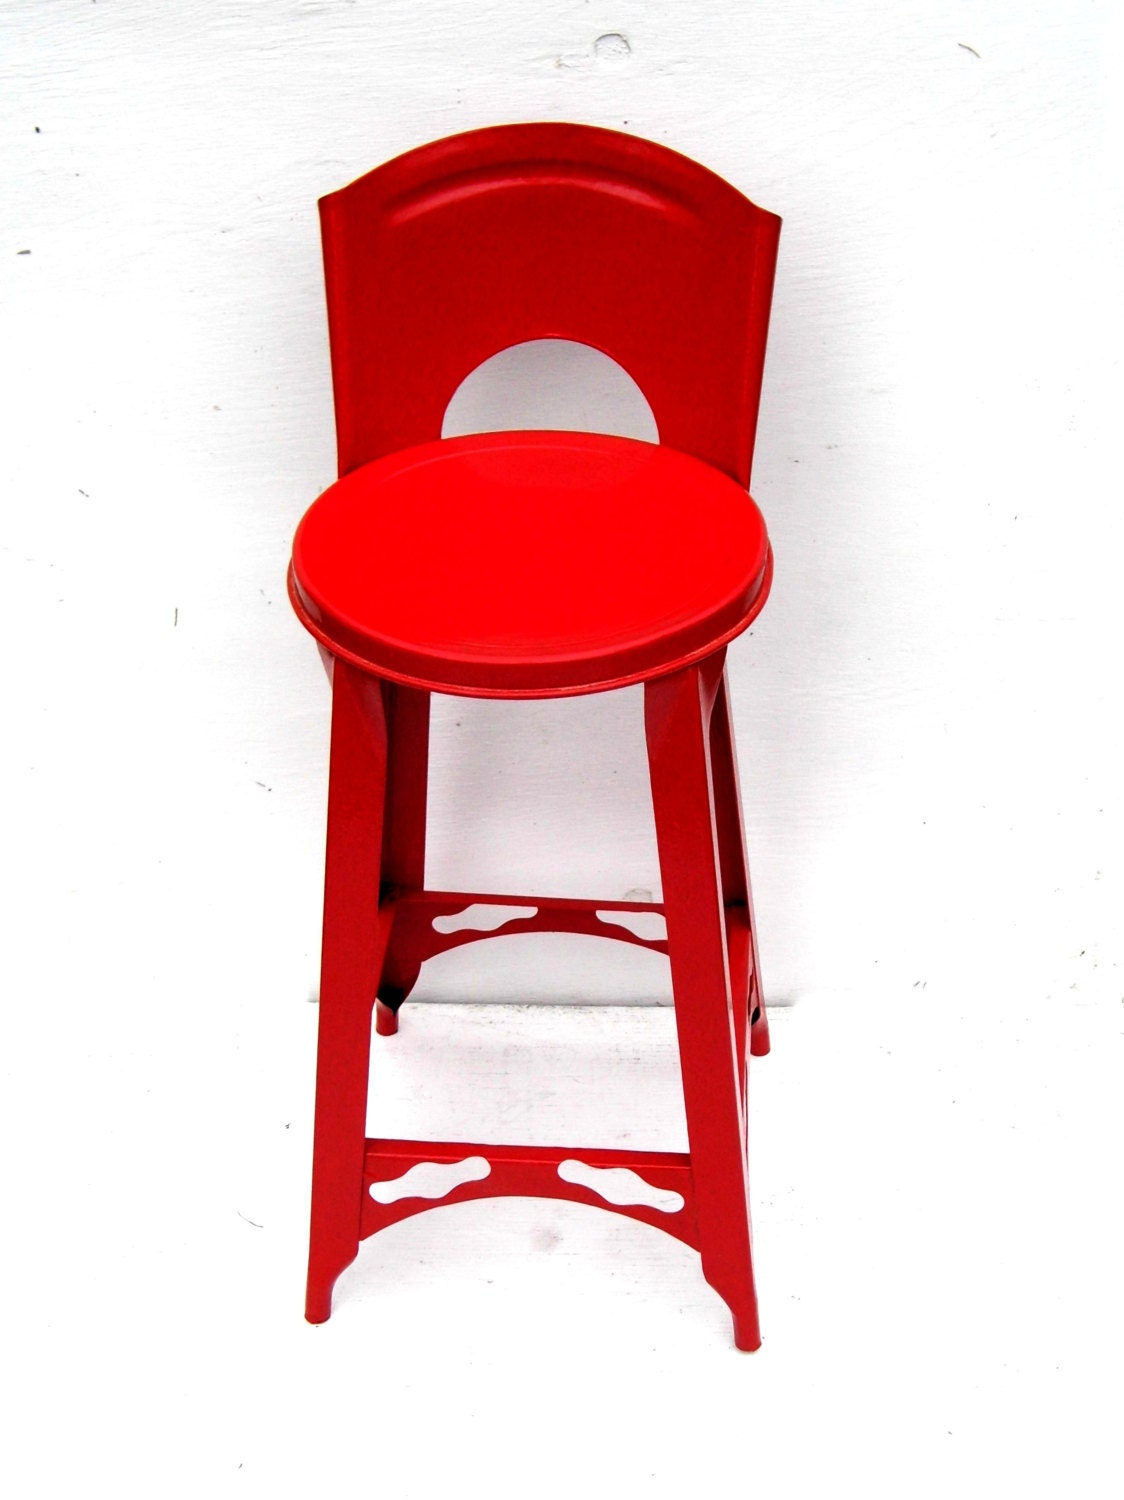 Vintage Red Metal Kitchen Stool Retro Red Kitchen Decor Mid